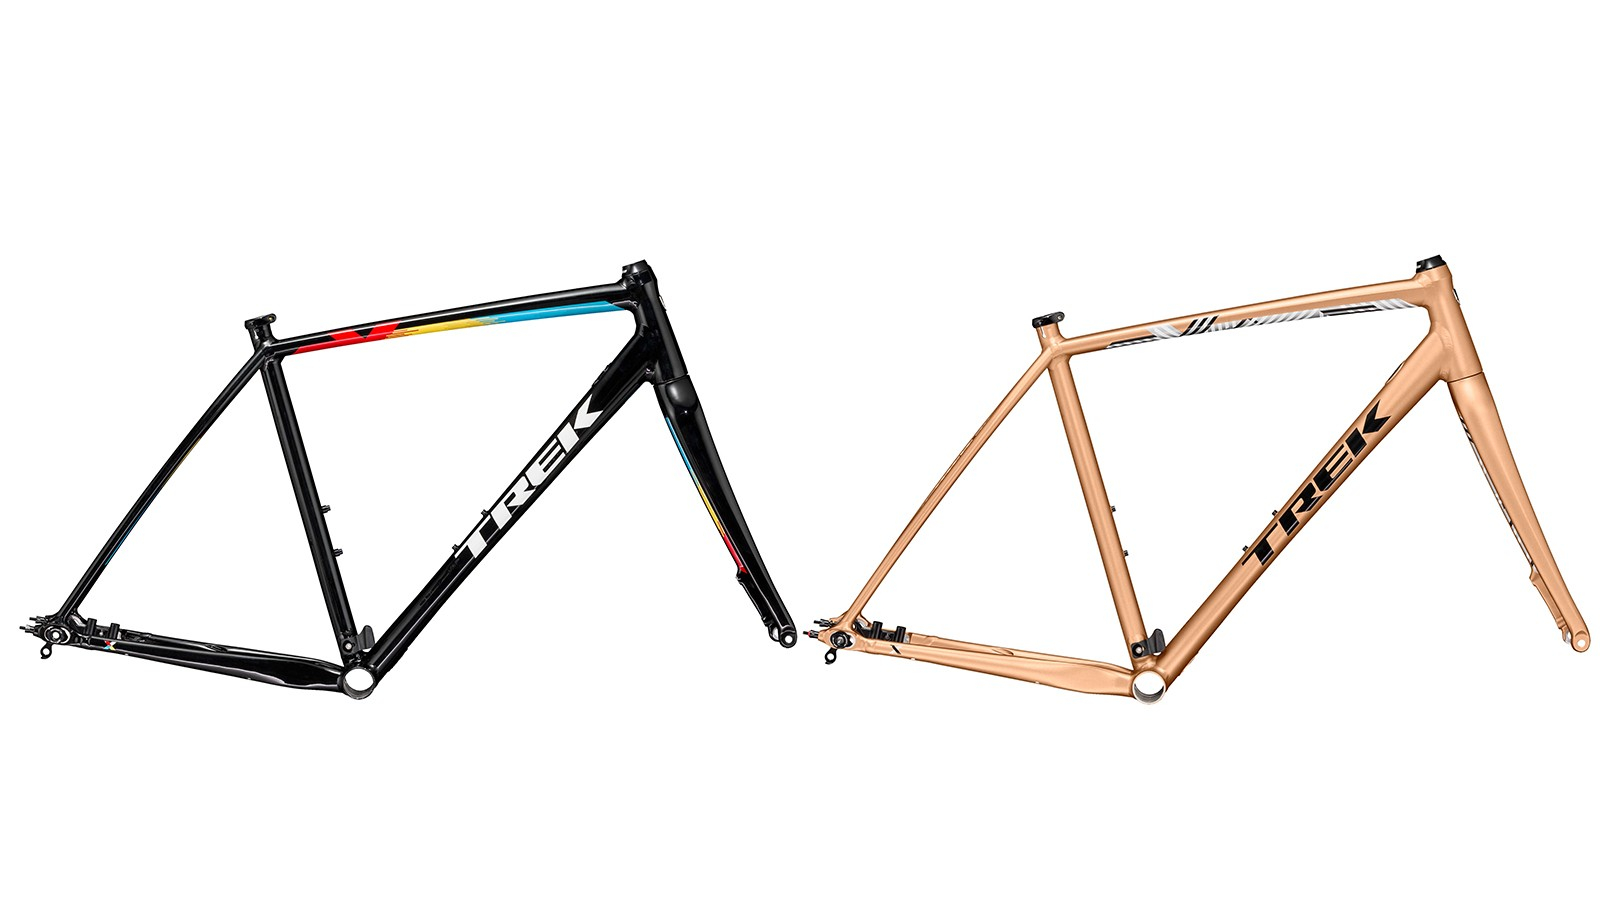 The Crockett Disc frame is offered in two paint schemes